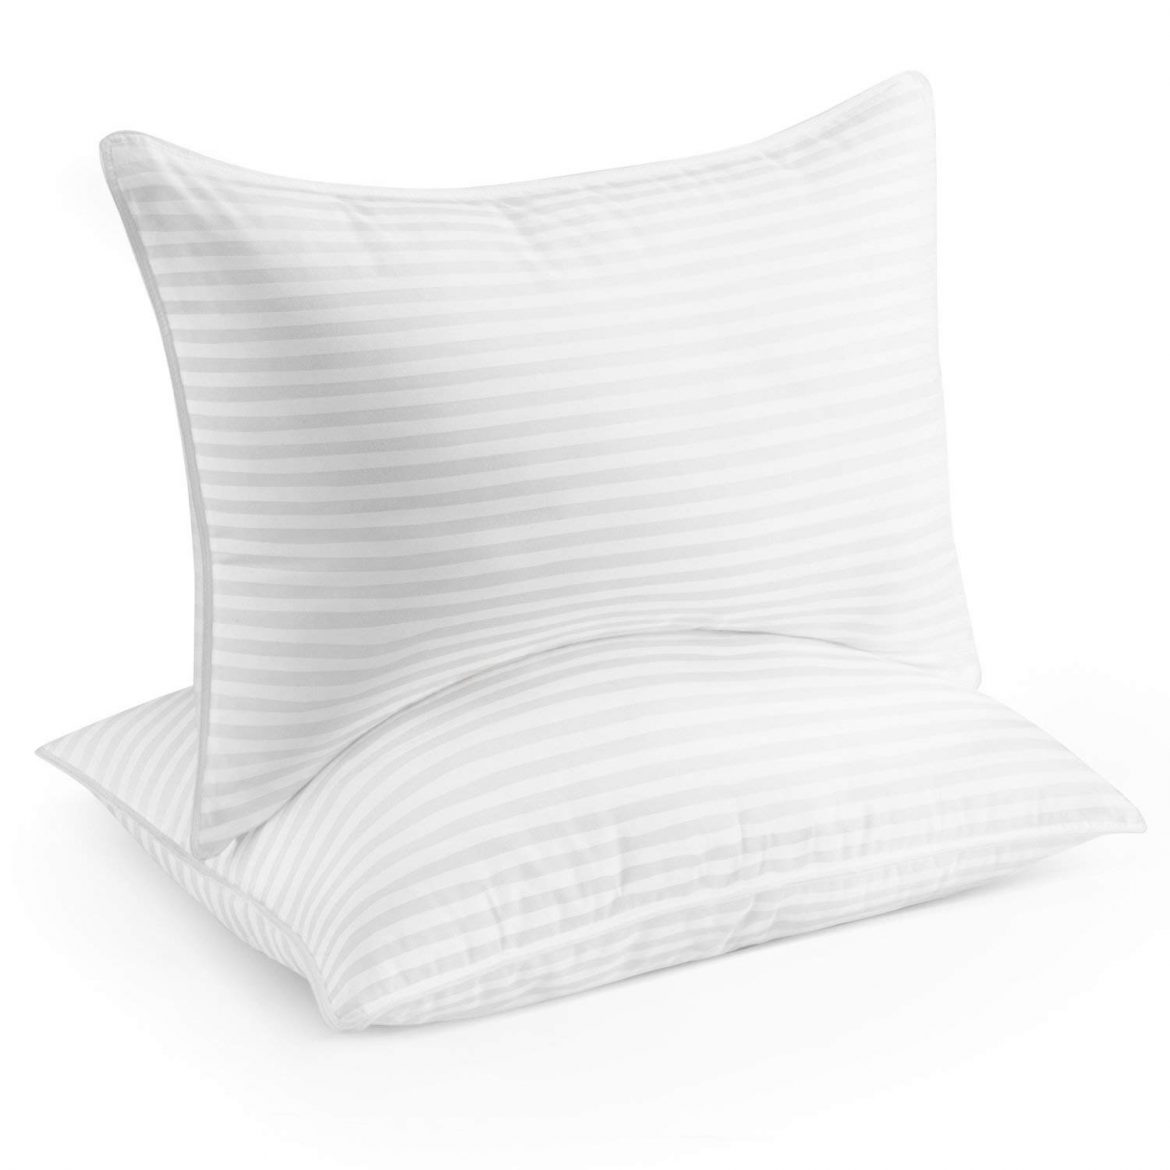 Beckman Hotel Collection - Best Pillows for Side Sleepers